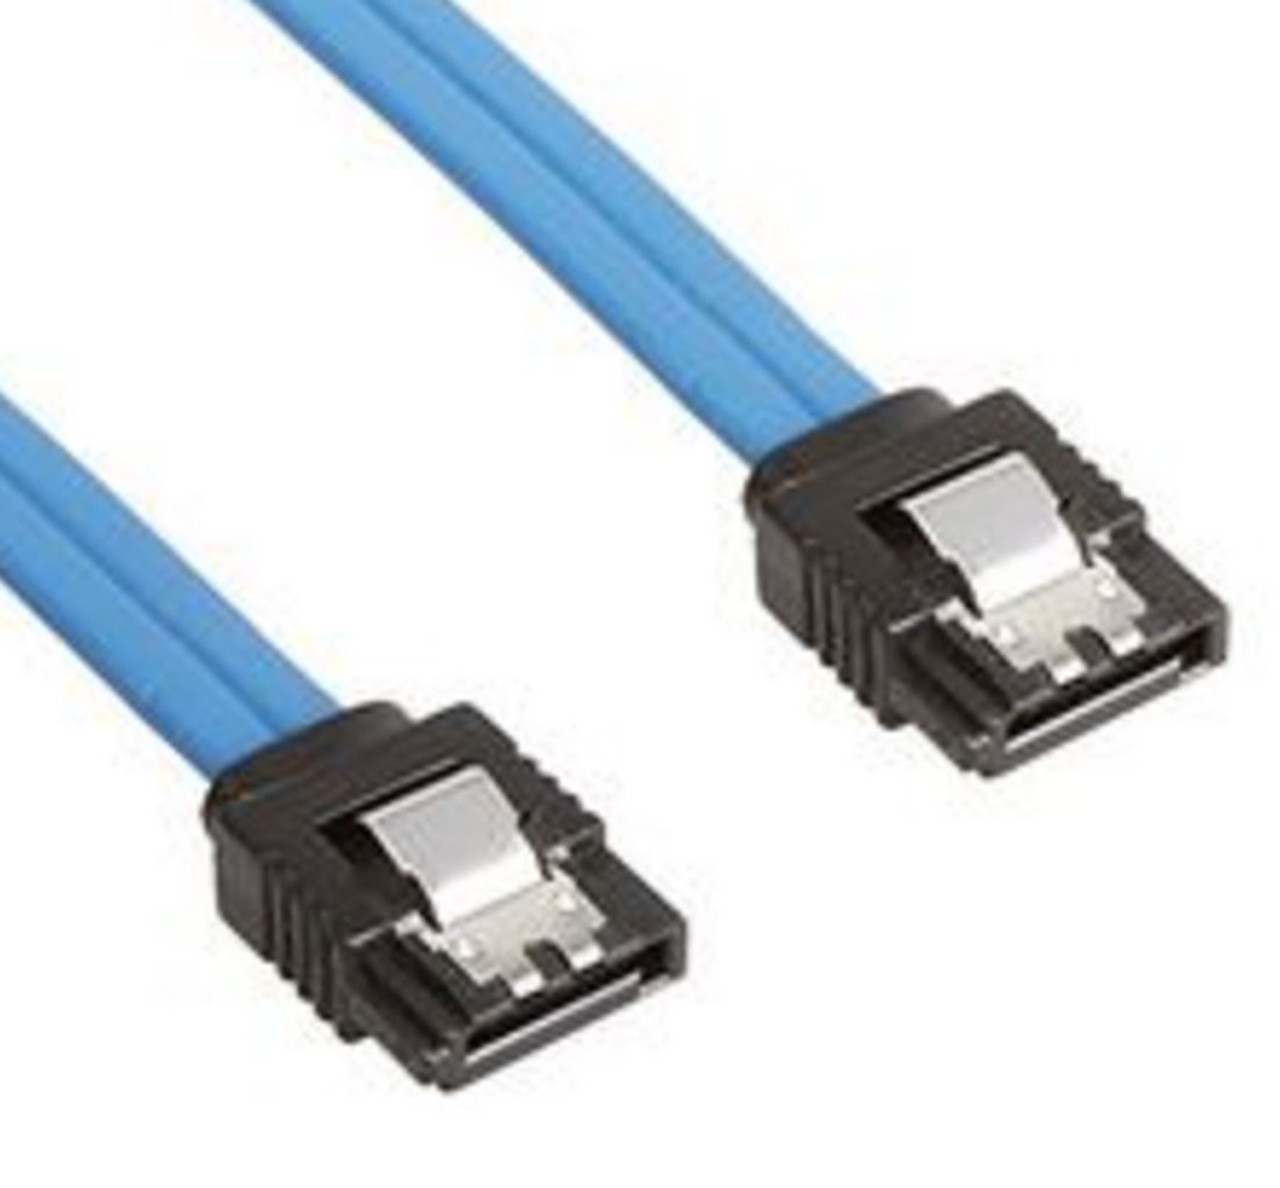 Product image for 50cm SATA 3.0 Data Cable 50cm M/M 180 to 180 Degree with Metal Blu | CX Computer Superstore